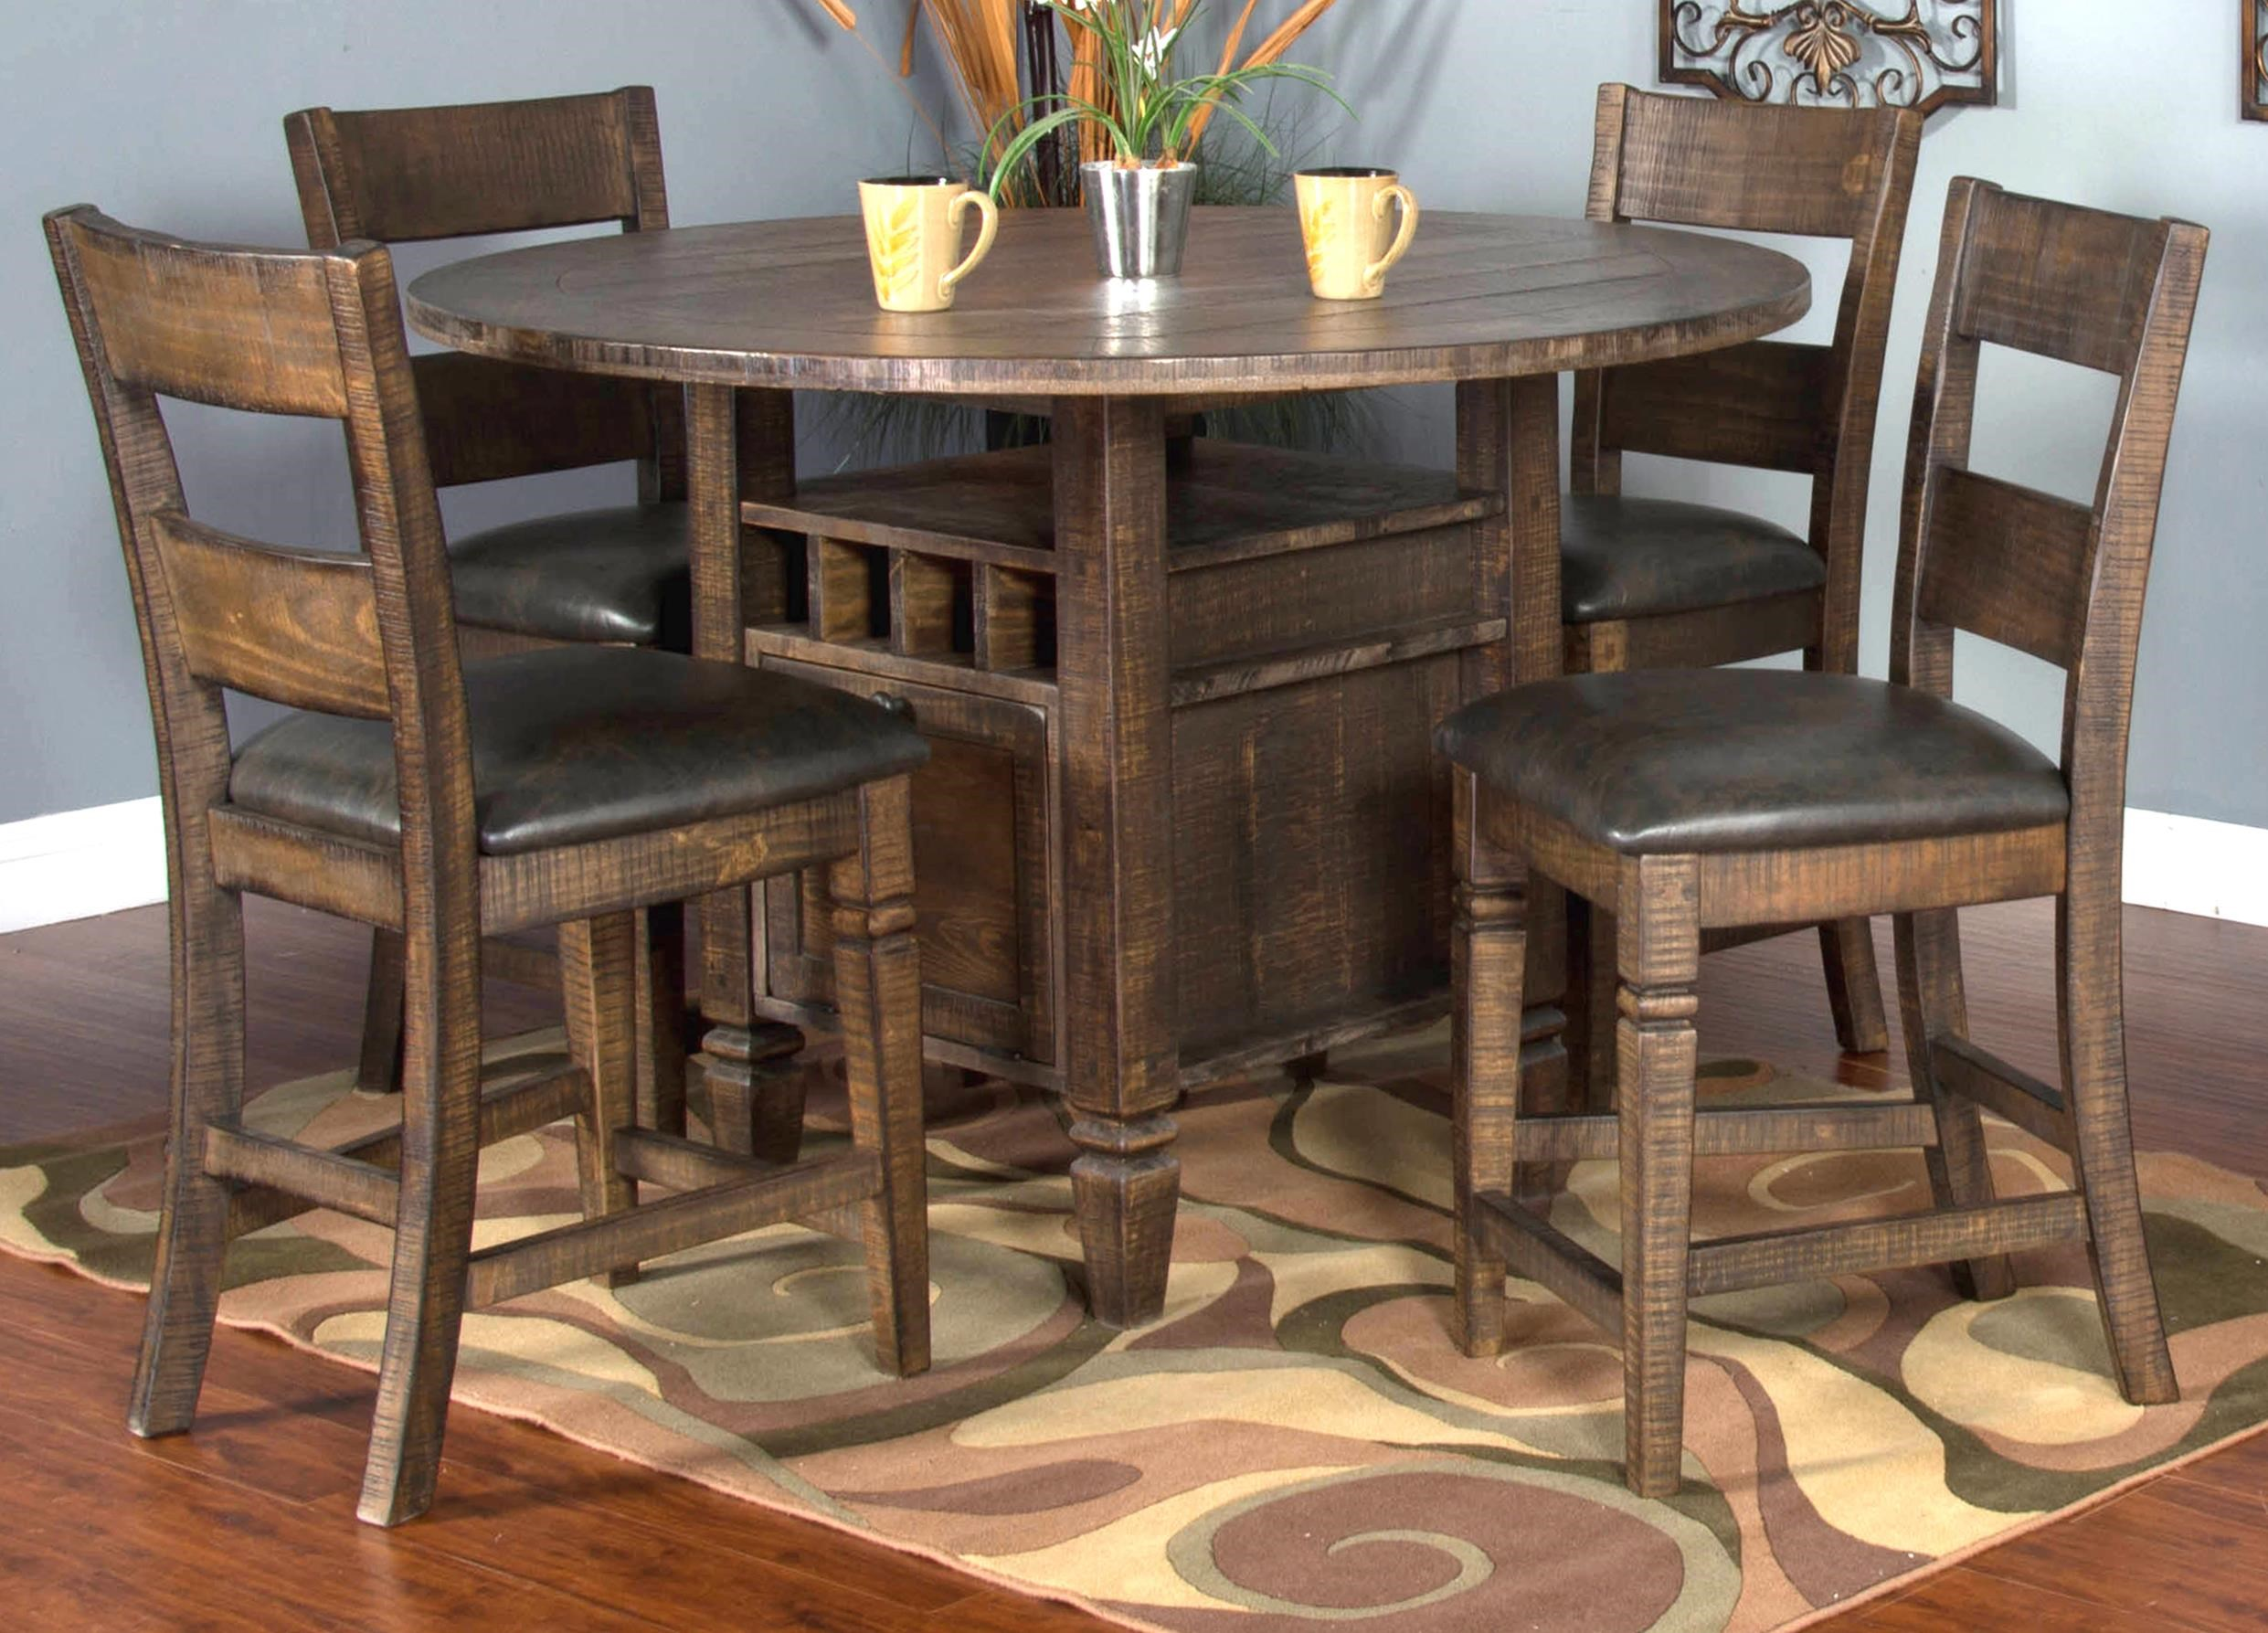 Thatcher Thatcher 5-Piece Dining Set by Sunny Designs at Morris Home